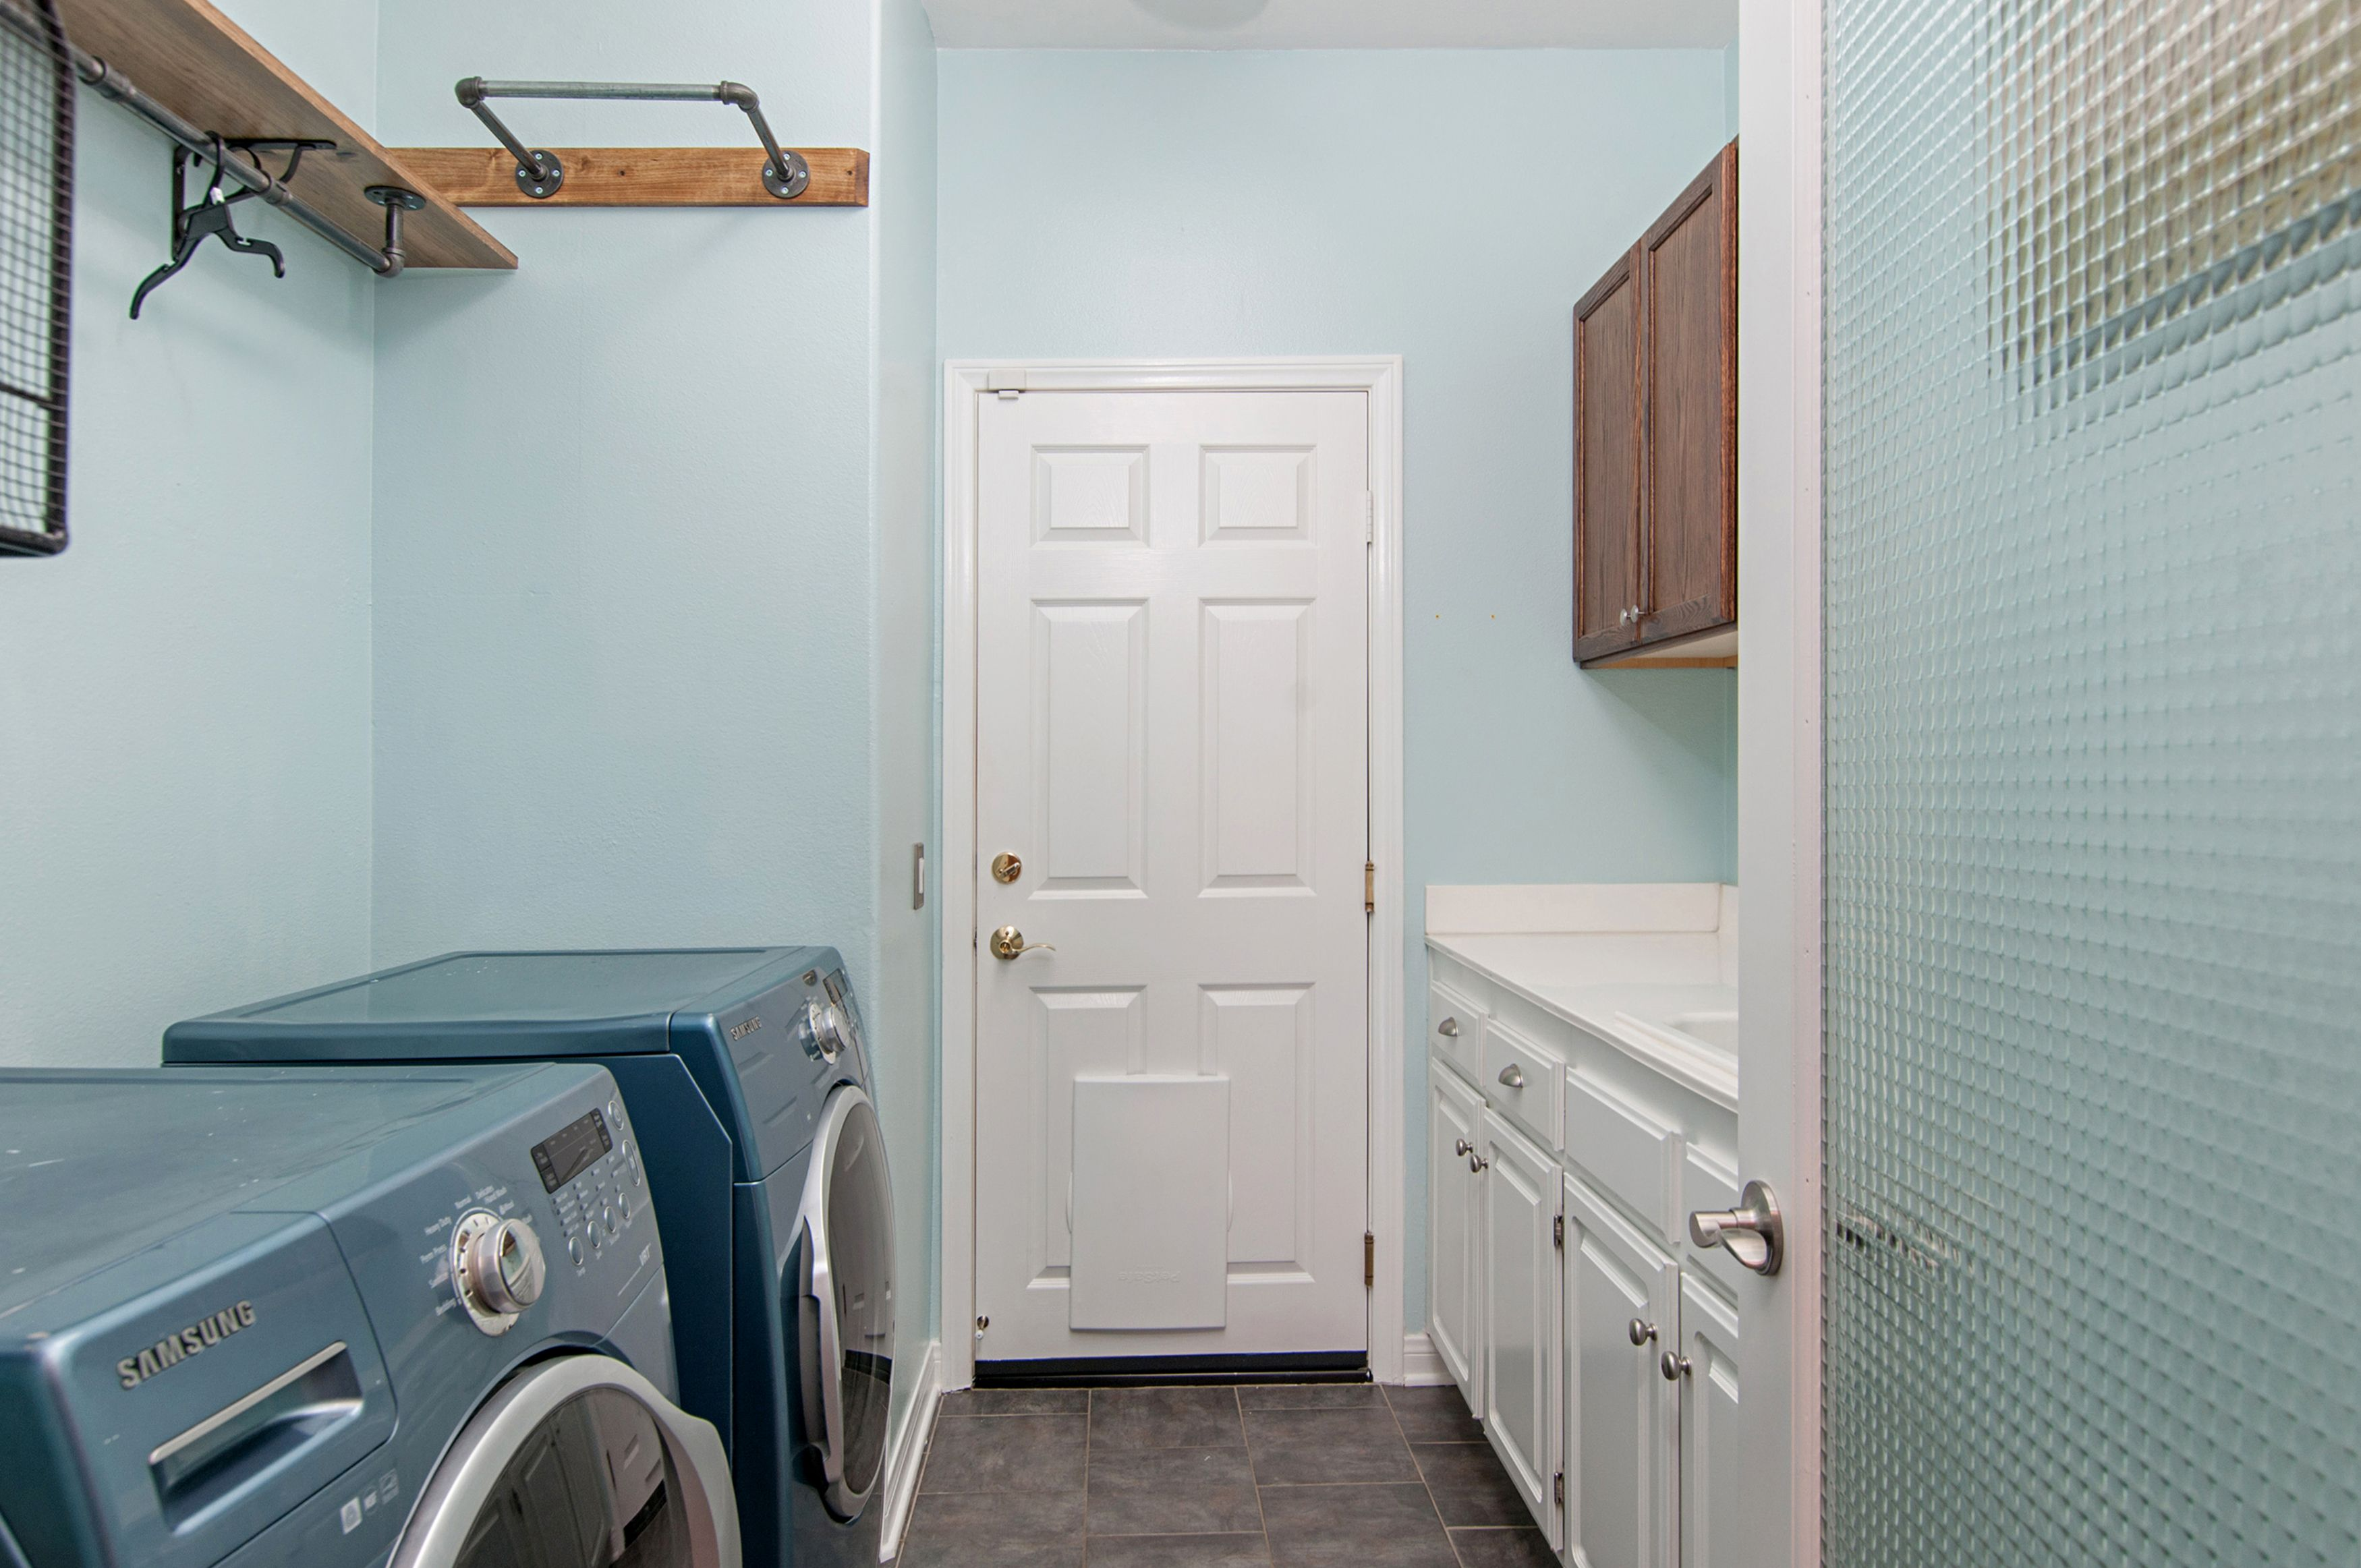 Little upgrades such as paint and wood stained shelves is all you need to make a big impact in your laundry room